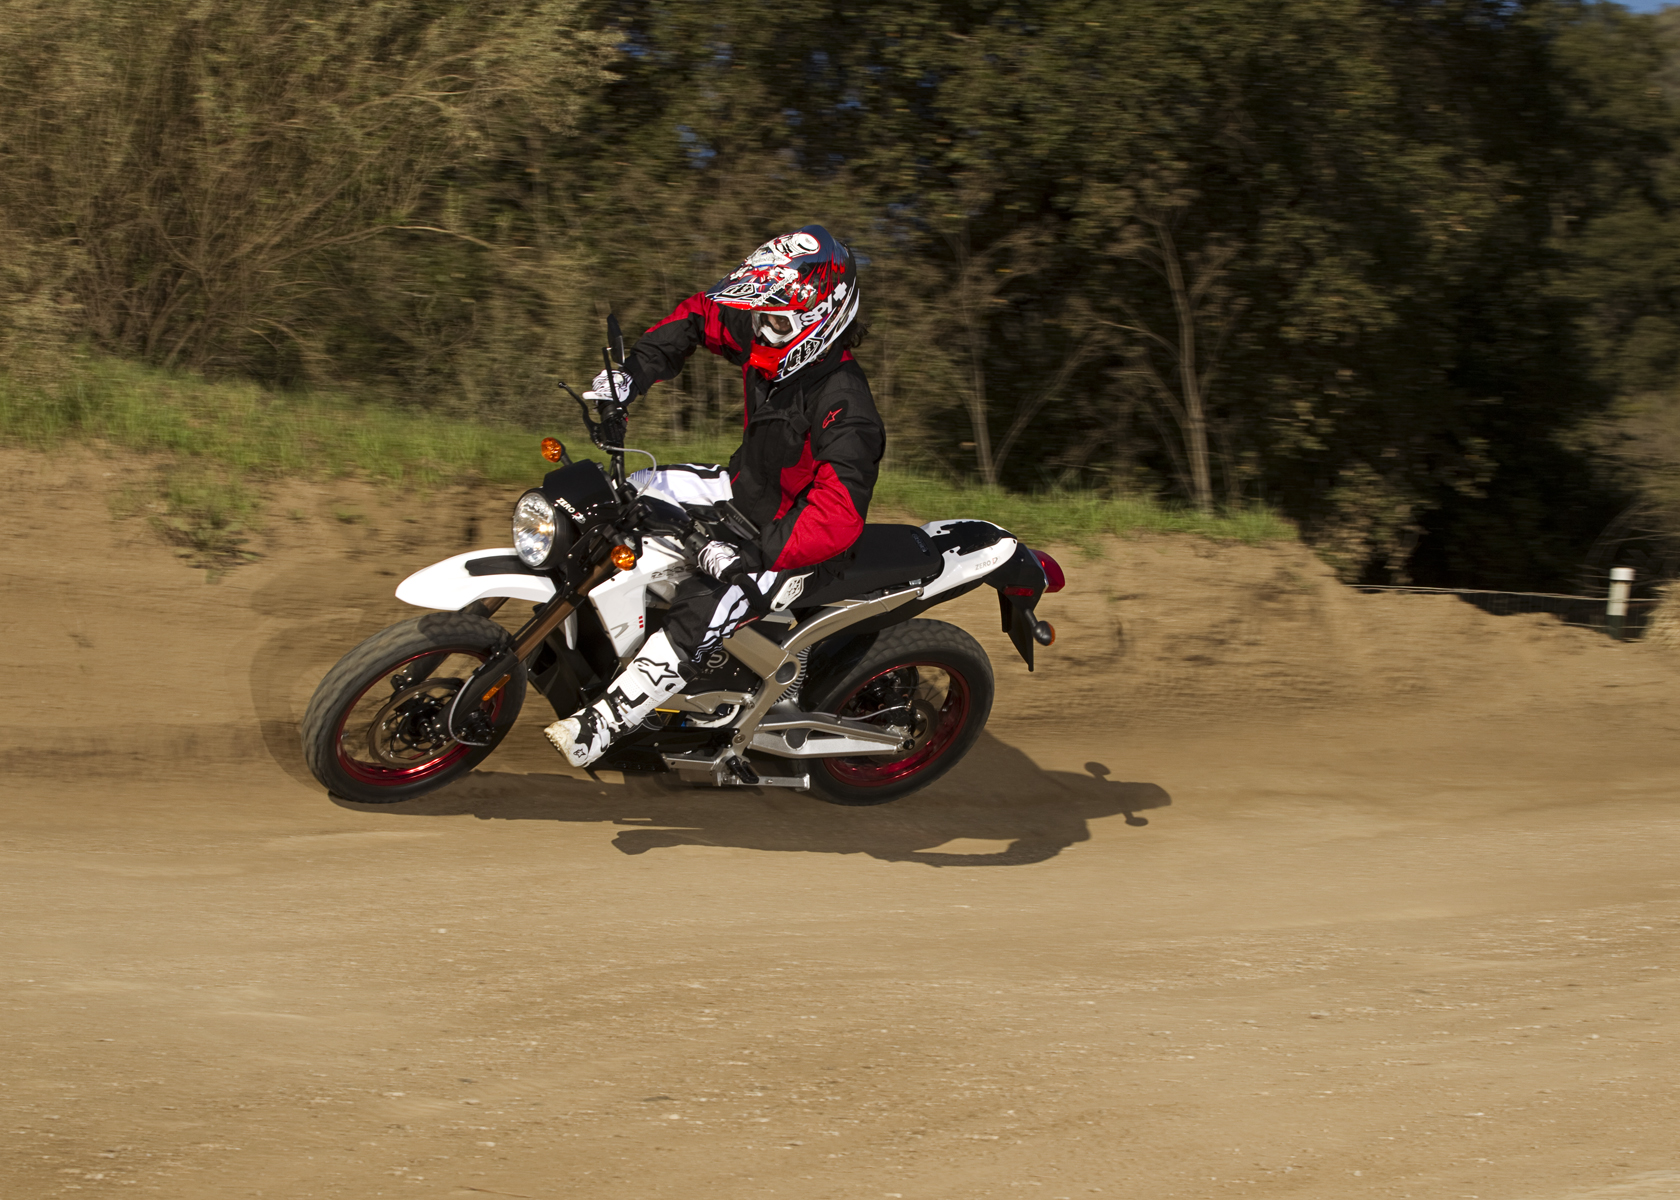 2011 Zero DS Electric Motorcycle: Dirt Road, Corner